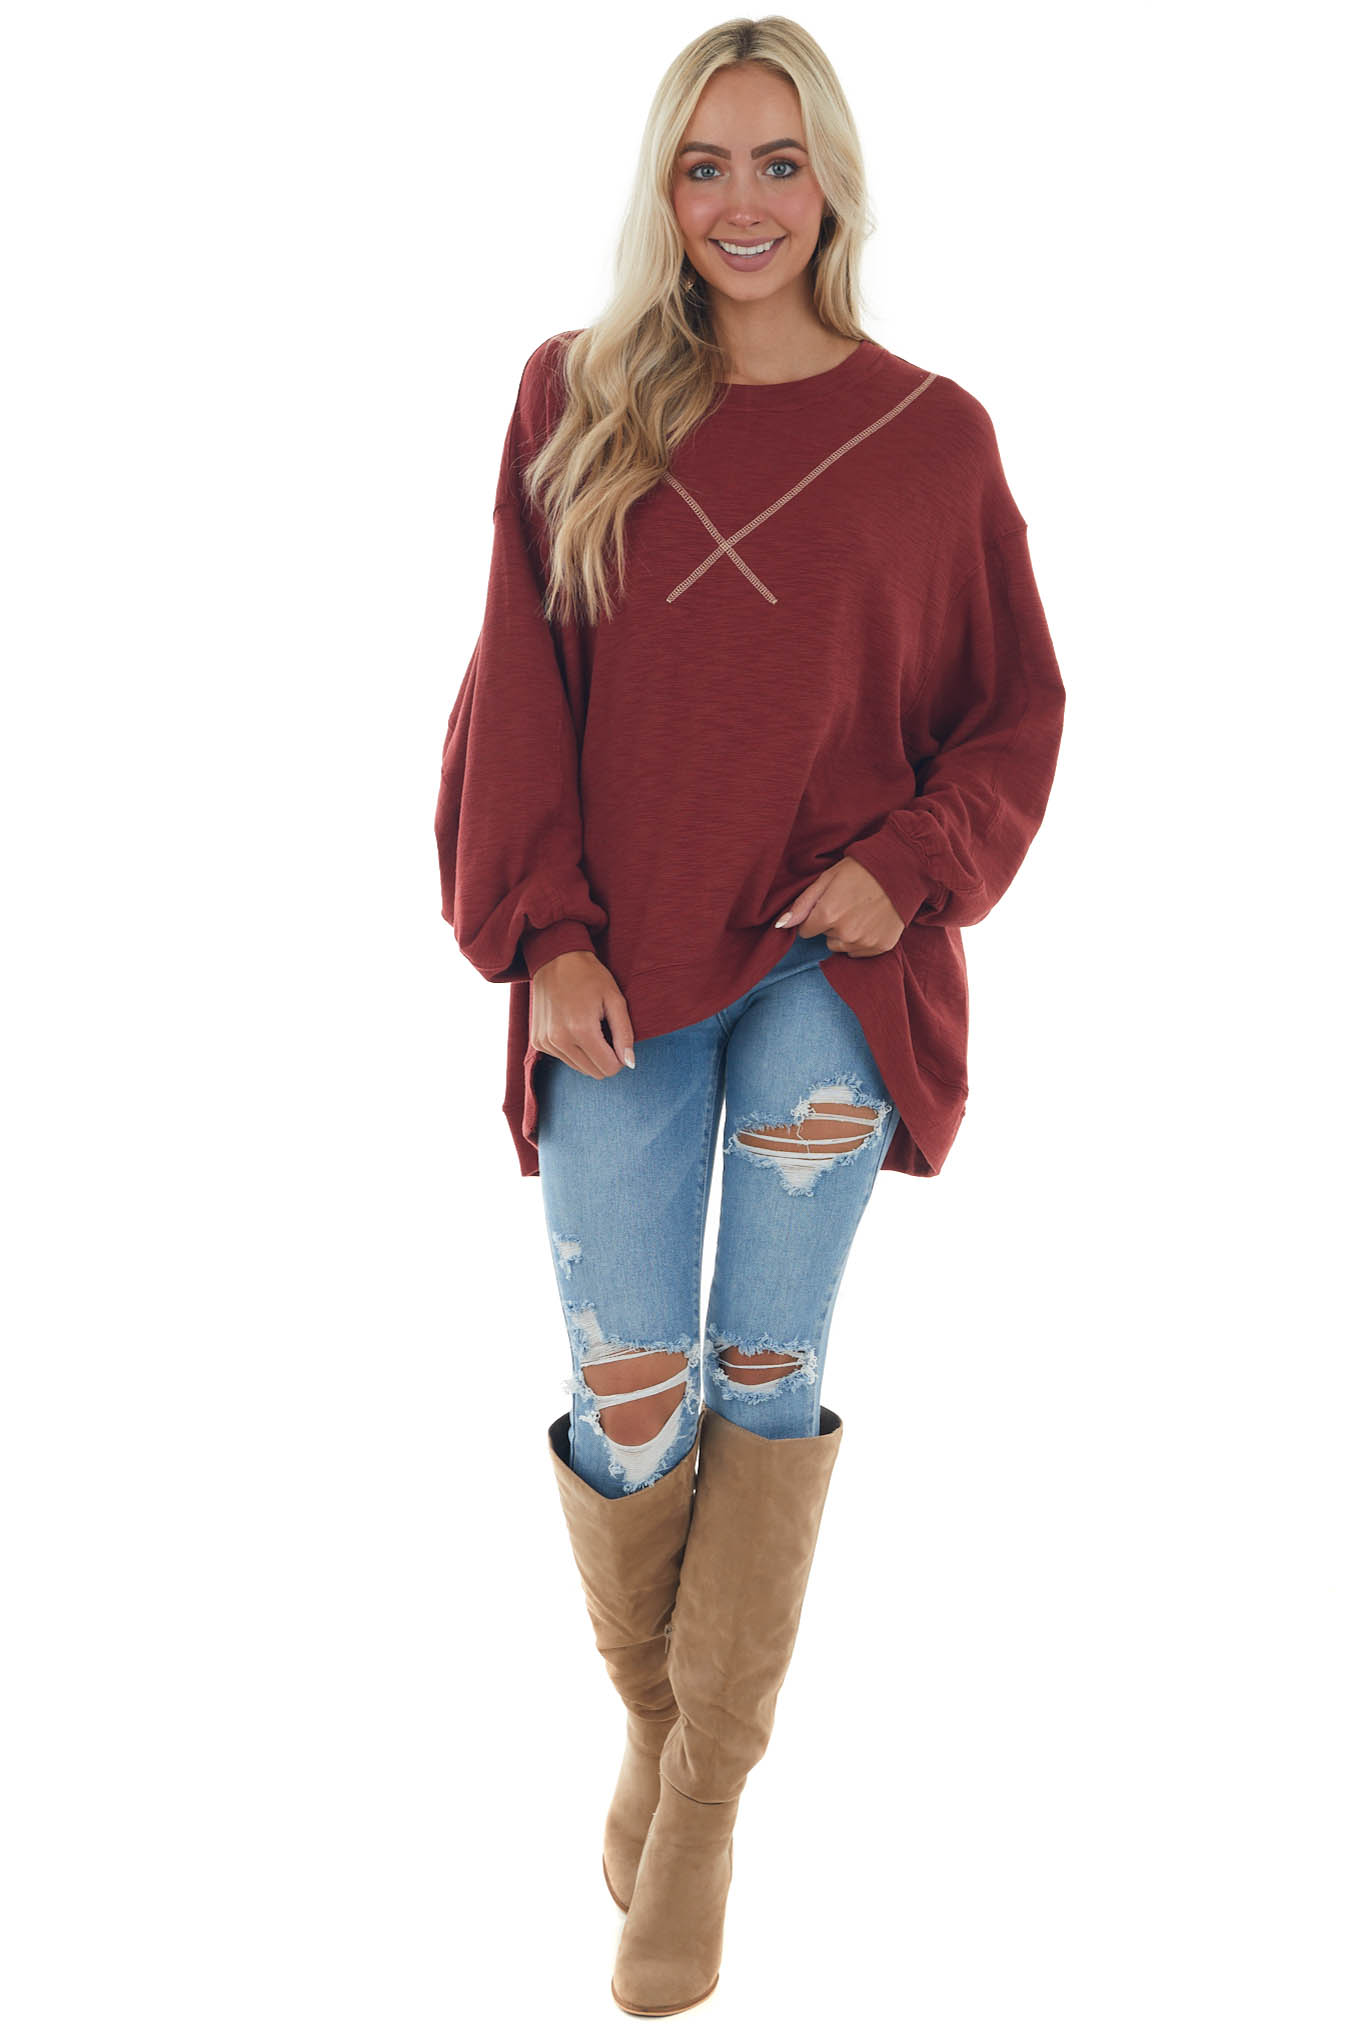 Maroon Oversized Knit Top with Long Sleeves